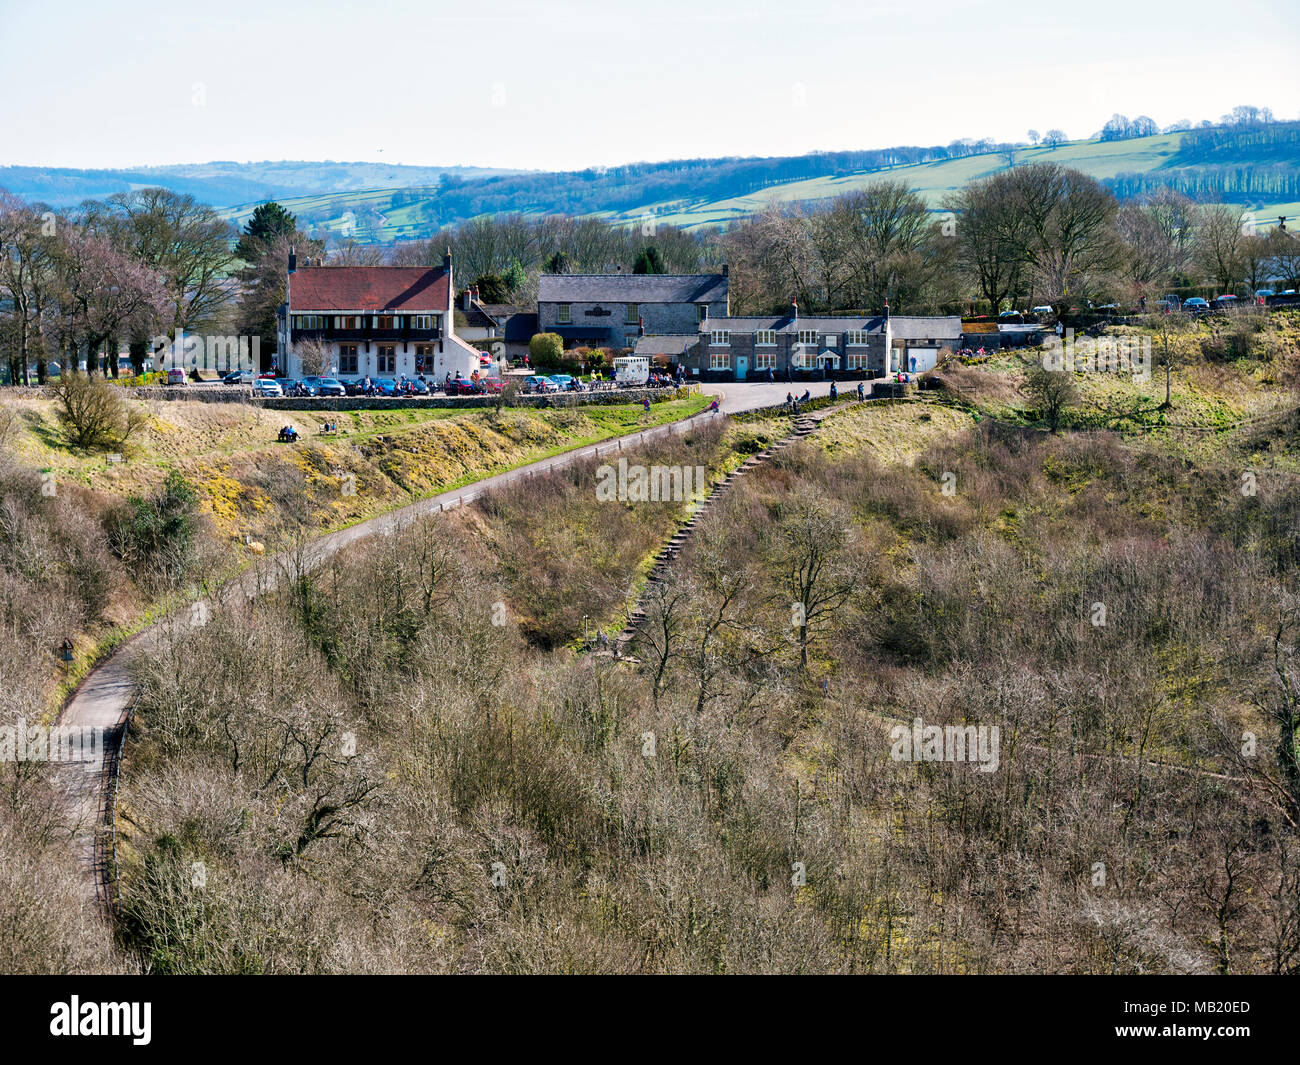 Peak District National Park. 5th Apr, 2018. pub; cafe; UK Weather: visitors, walkers & cyclists enjoying the glorious sunshine on Thursday after the wet Easter Bank Holiday break along the Monsal Trail at Monsal Head & viaduct near Ashford on the Water & Bakewell in the Peak District National Park Credit: Doug Blane/Alamy Live News - Stock Image